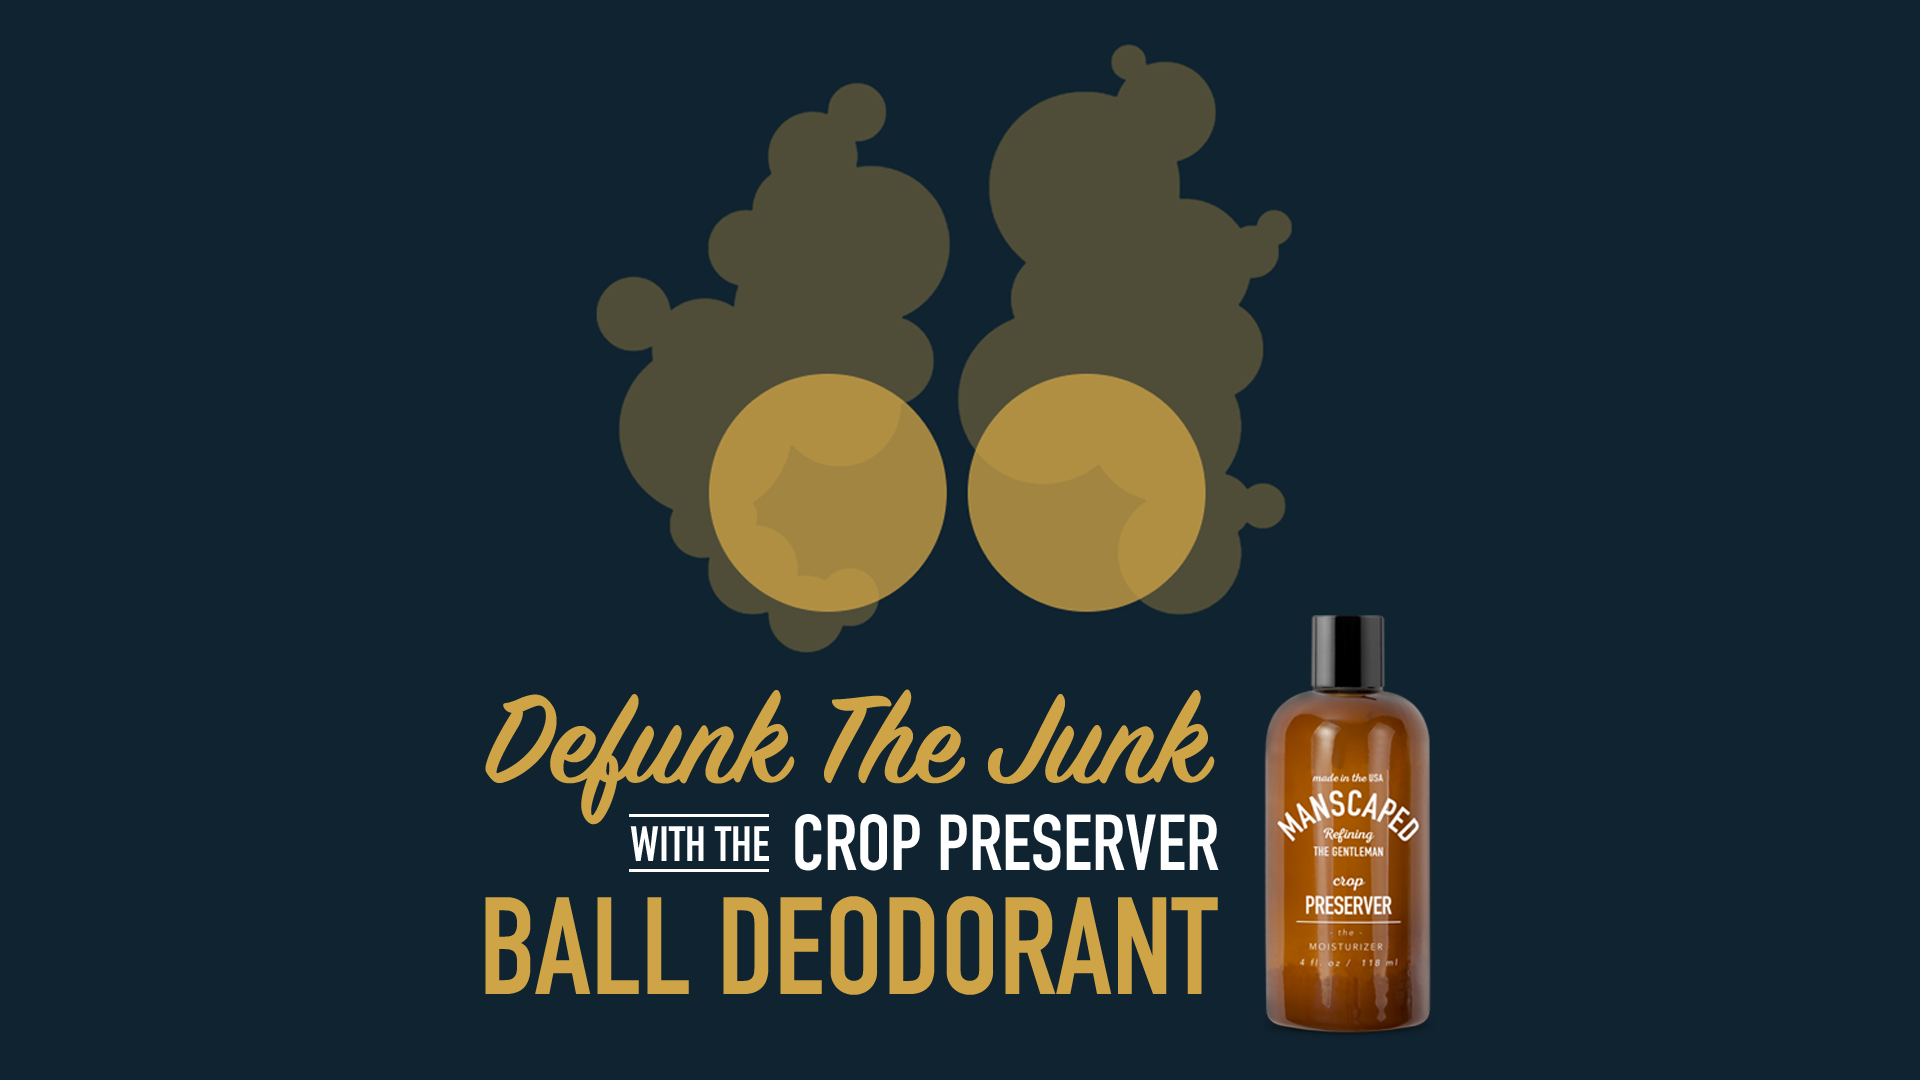 Our Dirty Little Secret... Ball Deodorant